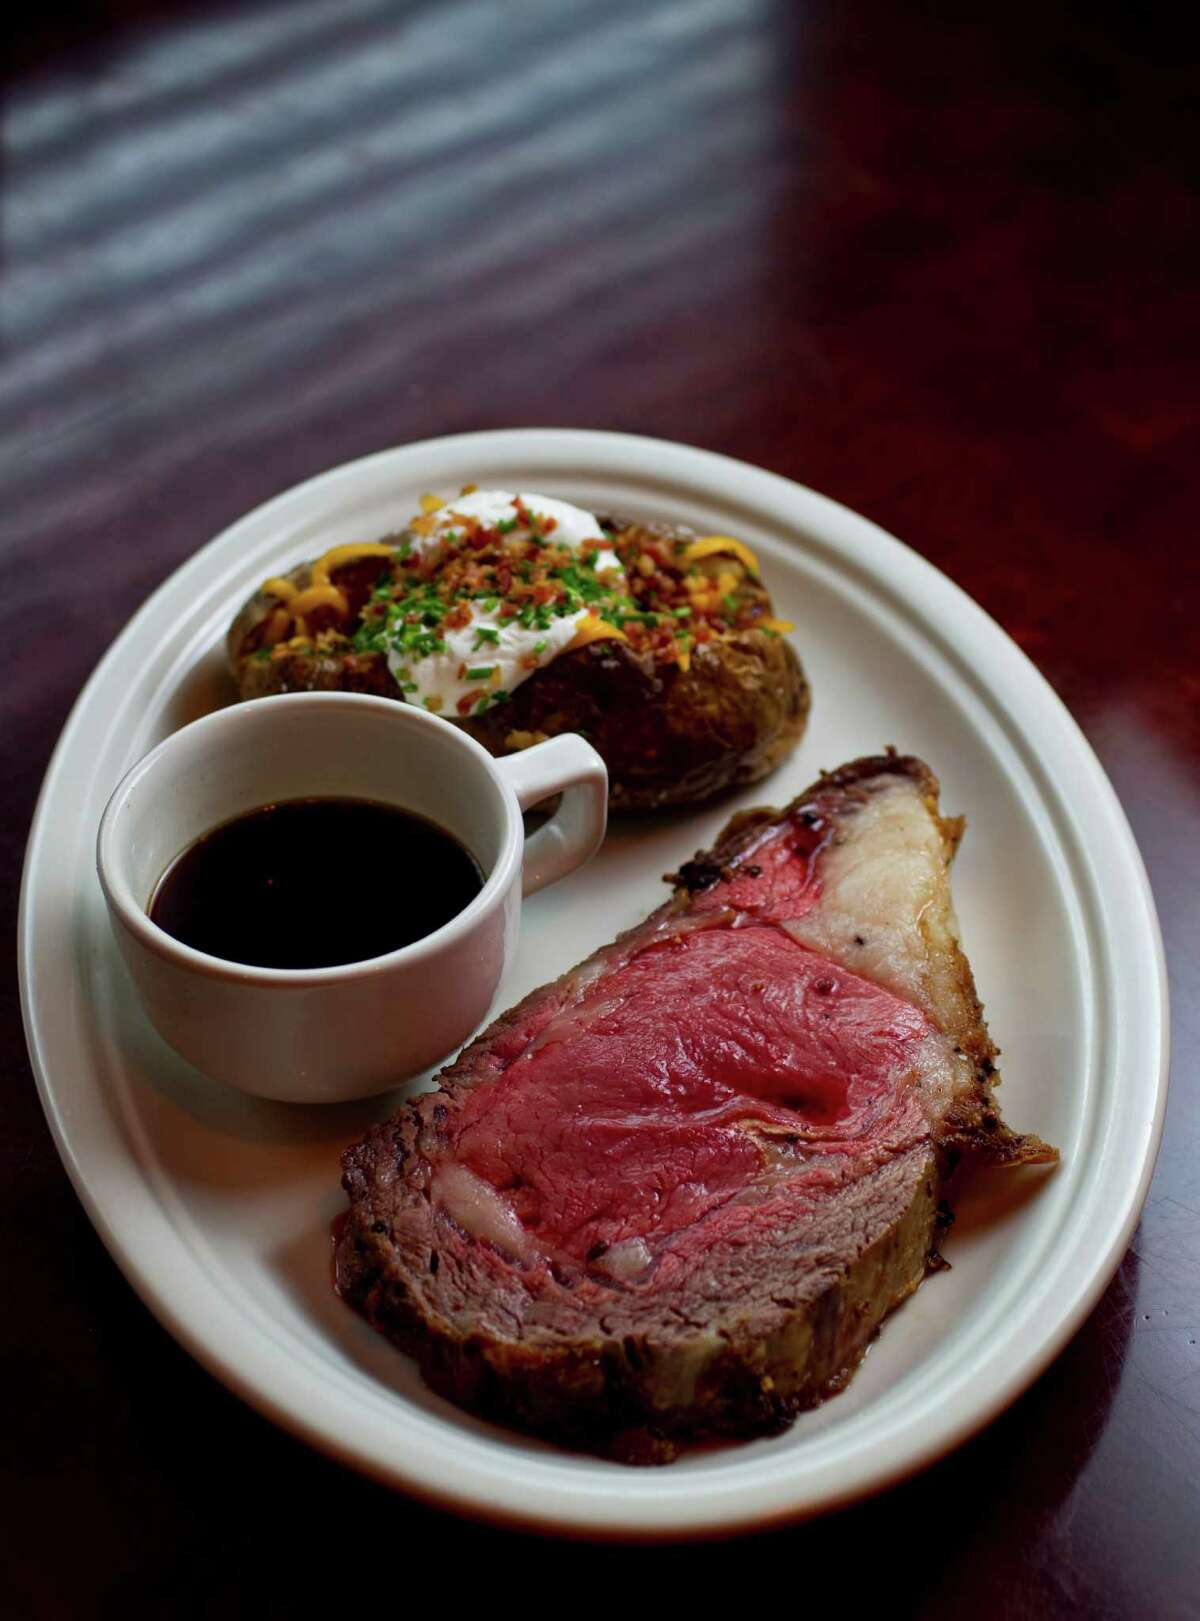 The Laurenzo family, owners of El Tiempo Cantina restaurants and Laurenzo's on Washington, plan to open a second Laurenzo's at 1910 Bagby in the former Republic Smokehouse location in Midtown. They expect to open before the Super Bowl. Shown: The Prime Rib with au jus and a loaded baked potato at Laurenzo's, 4412 Washington.